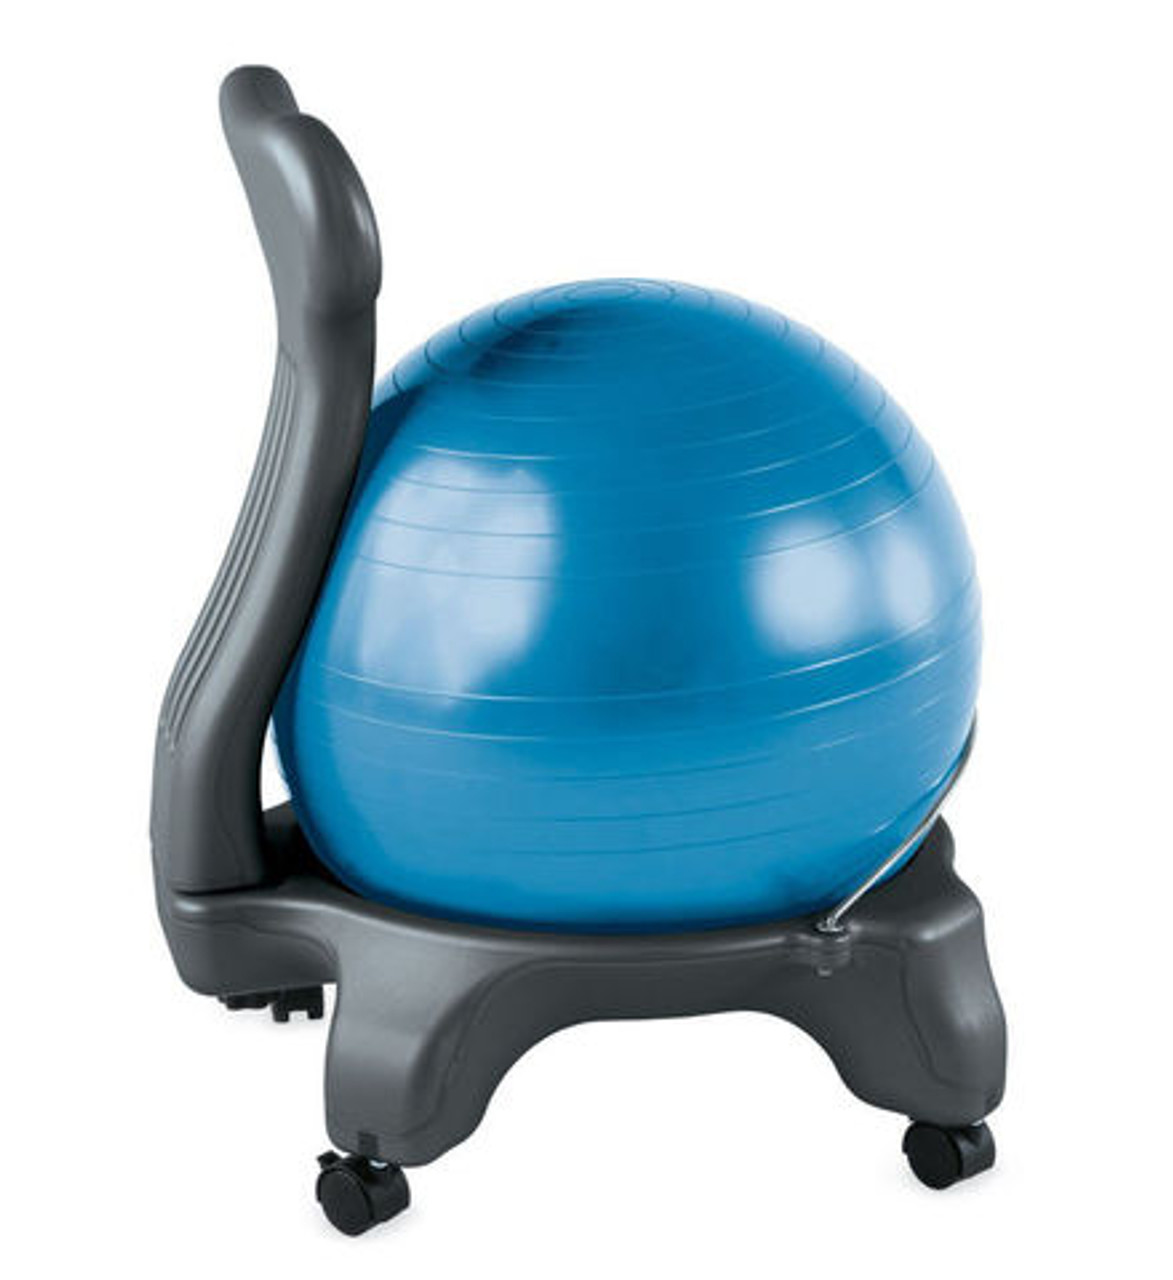 Phenomenal Modern Ball Chair With Locking Casters Short Links Chair Design For Home Short Linksinfo